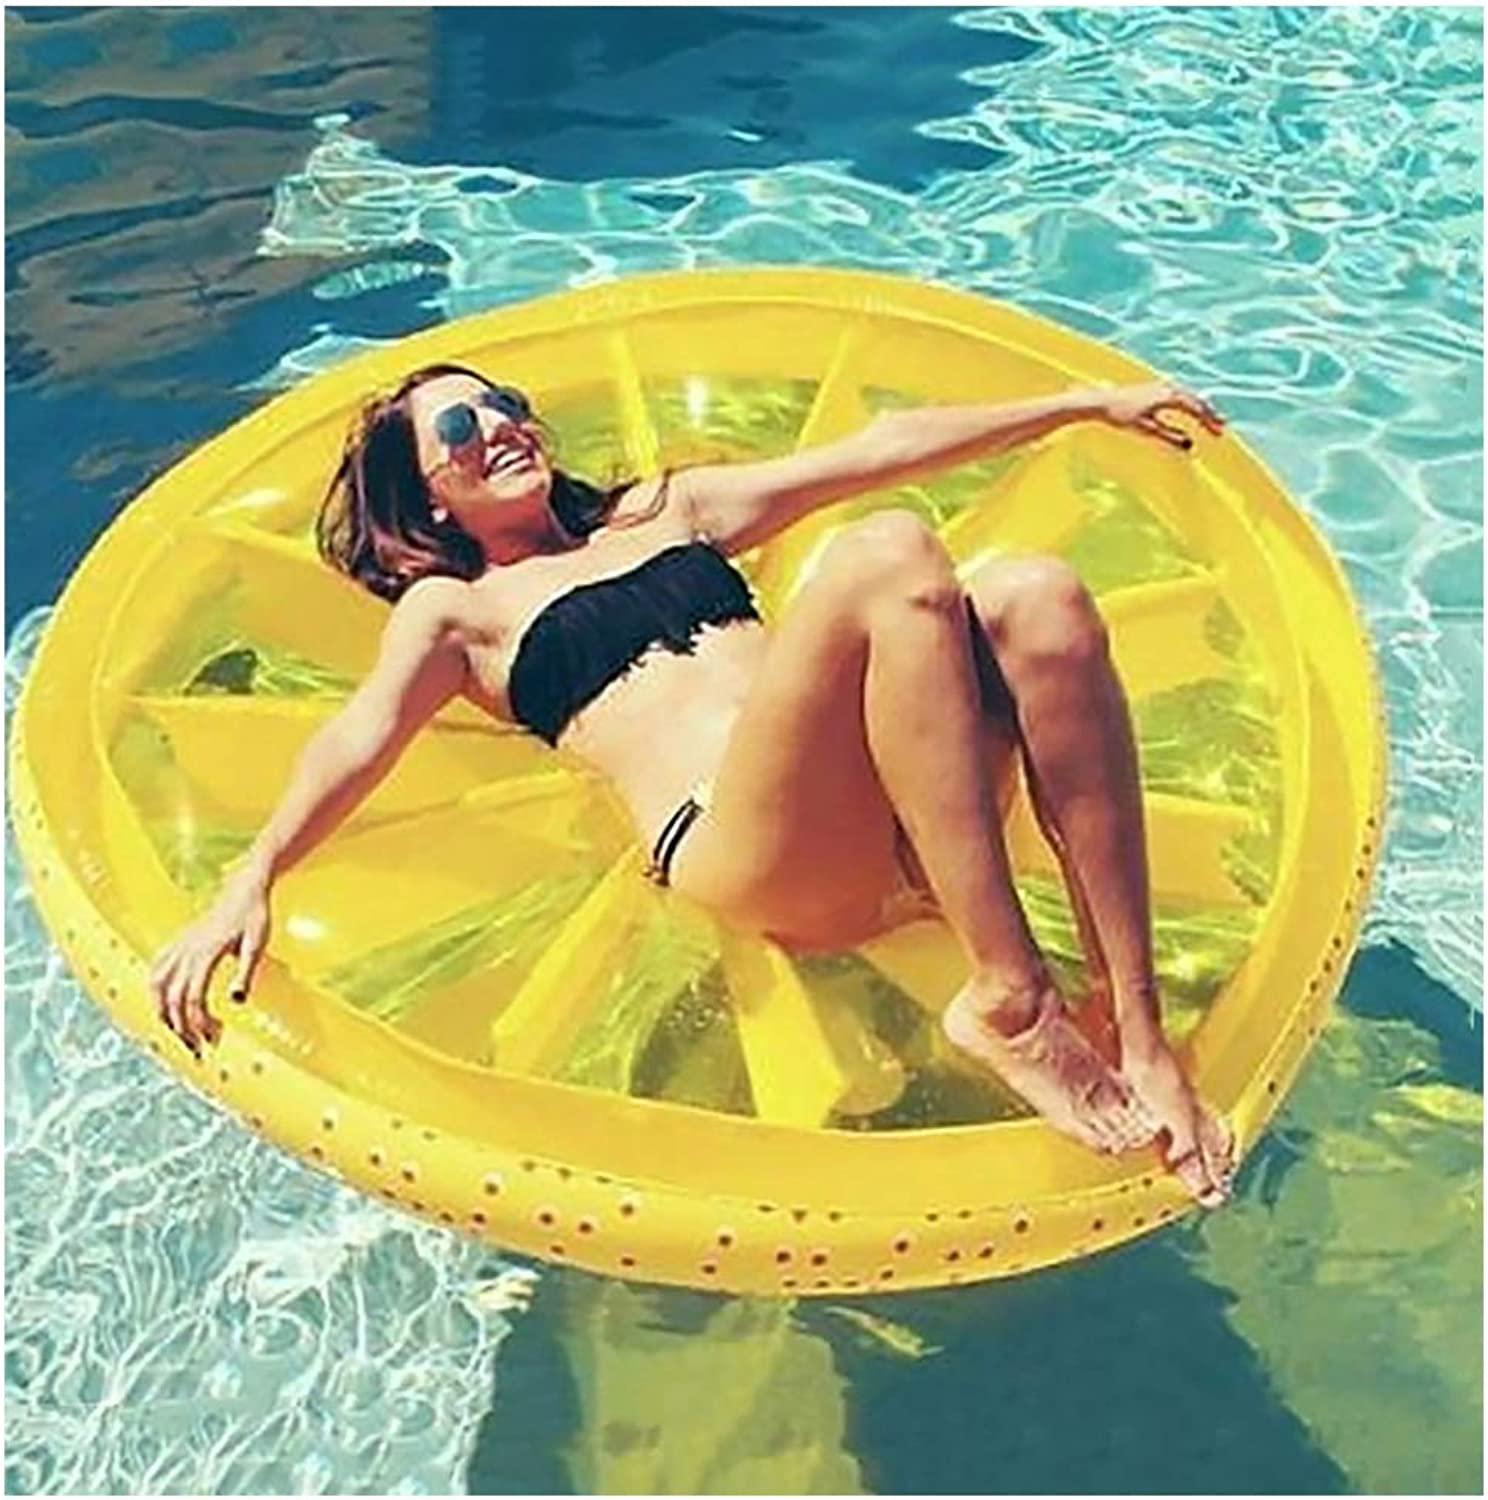 XIONGDA Portable Large Floating Row Adult Pool Inflatable Float Water Lounger Toys Swimming Ring Suitable the Beach Summer Party Outdoor Water Recreation